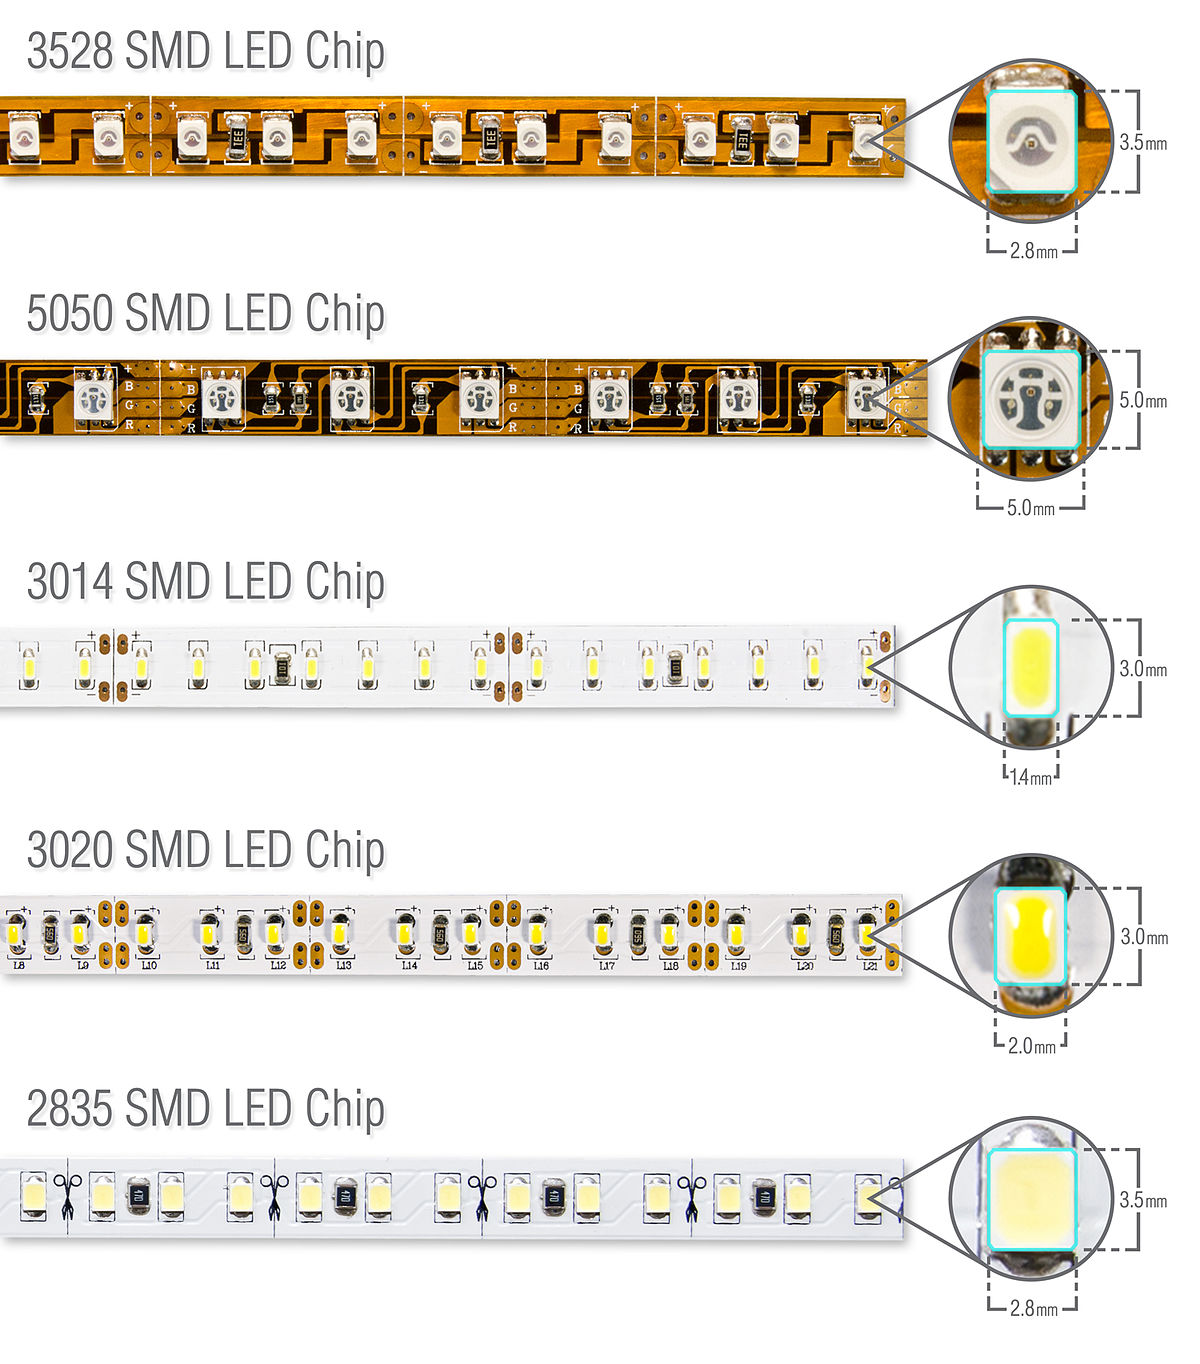 hight resolution of smd led wiring diagram wiring diagrams led smd types diy 5050 wiring diagram wiring library wiring